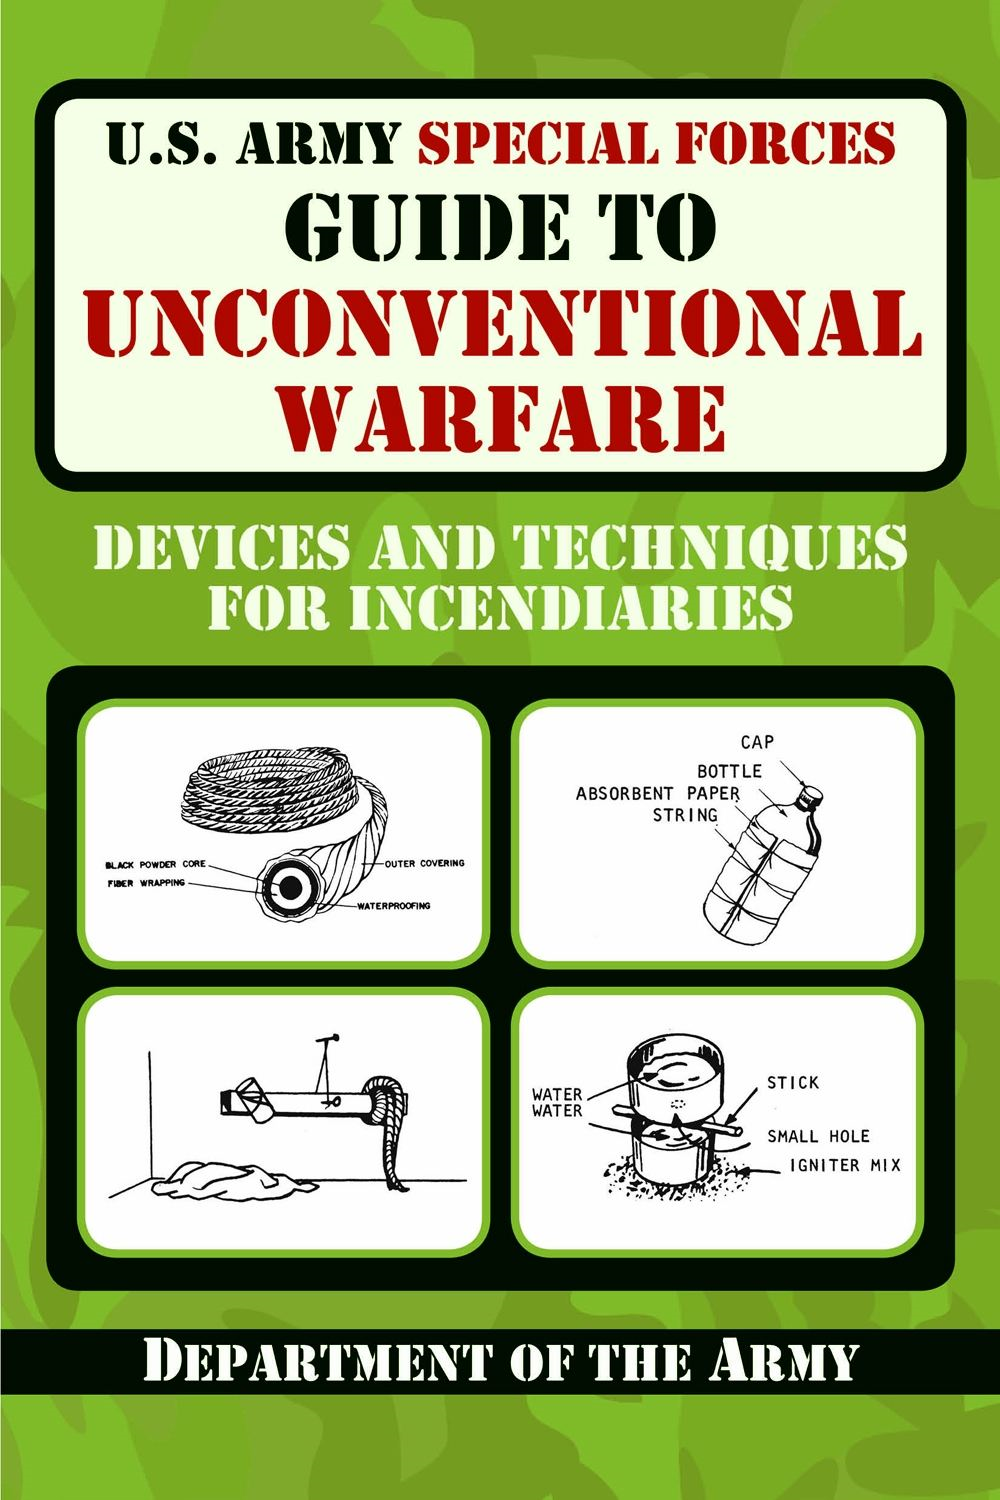 U.S. Army  Special Forces Guide to Unconventional Warfare: Devices and Techniques for Incendiarires  By: Department of the Army